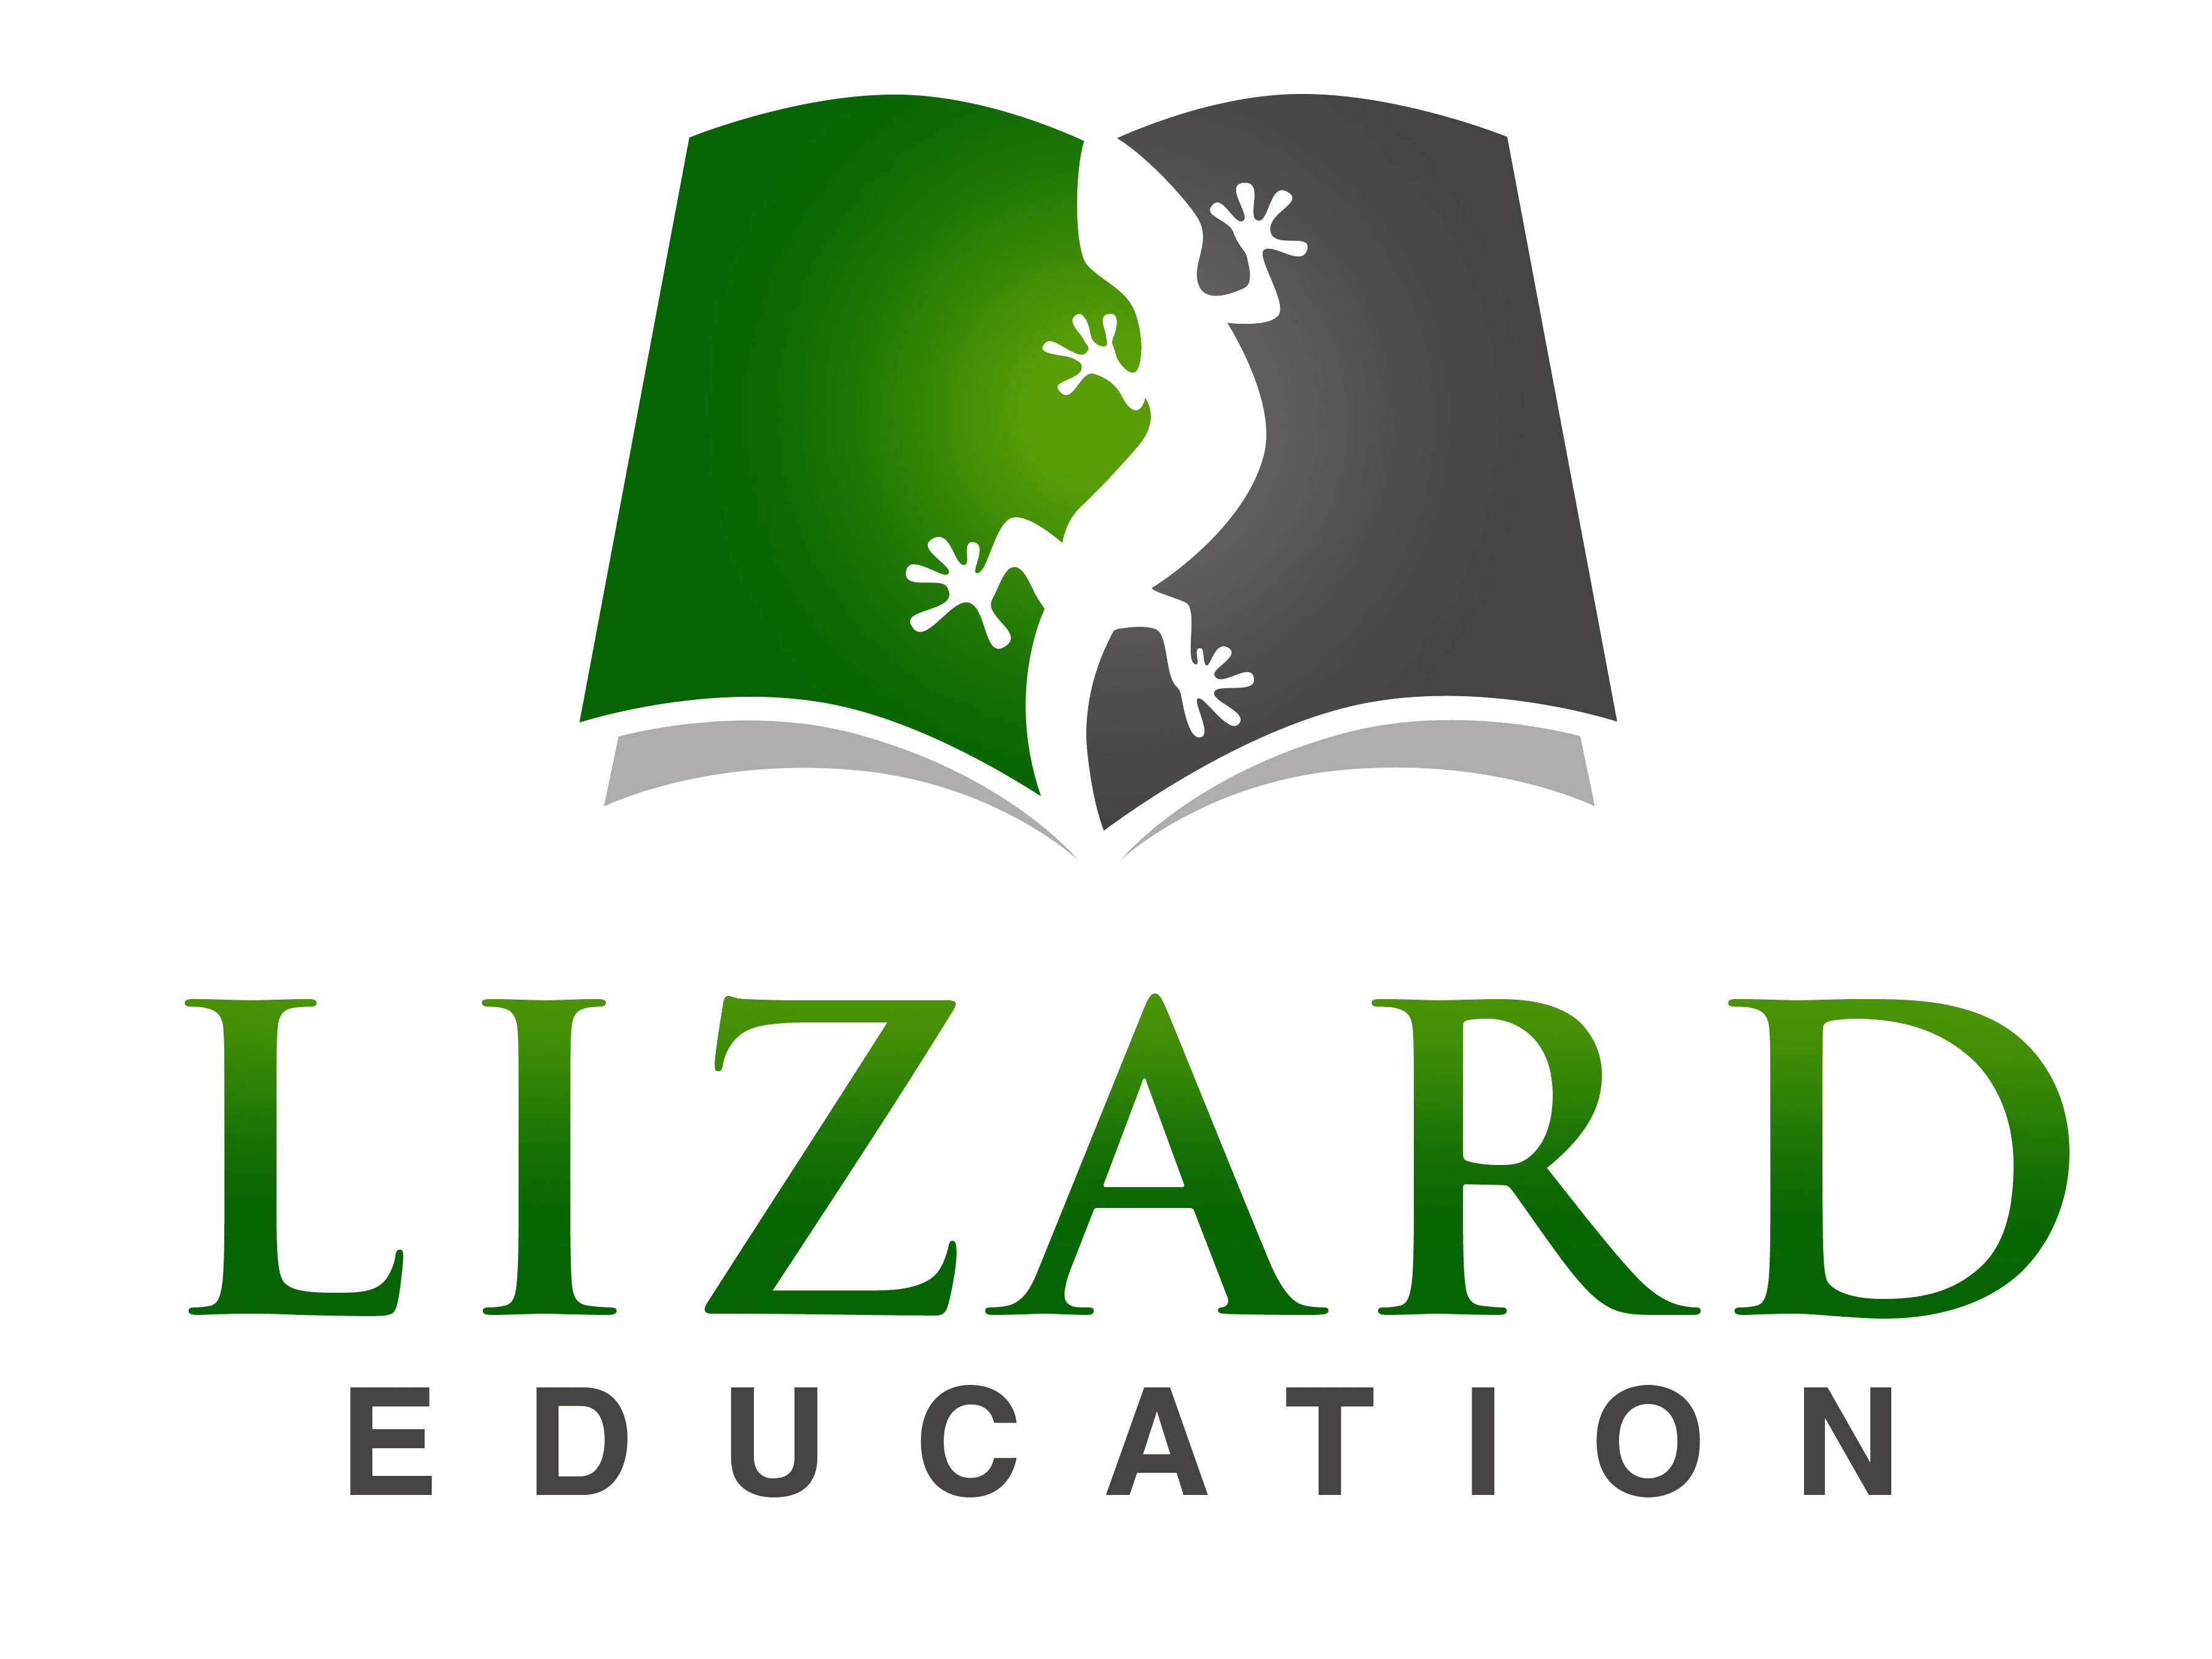 essay assistance lizard education image